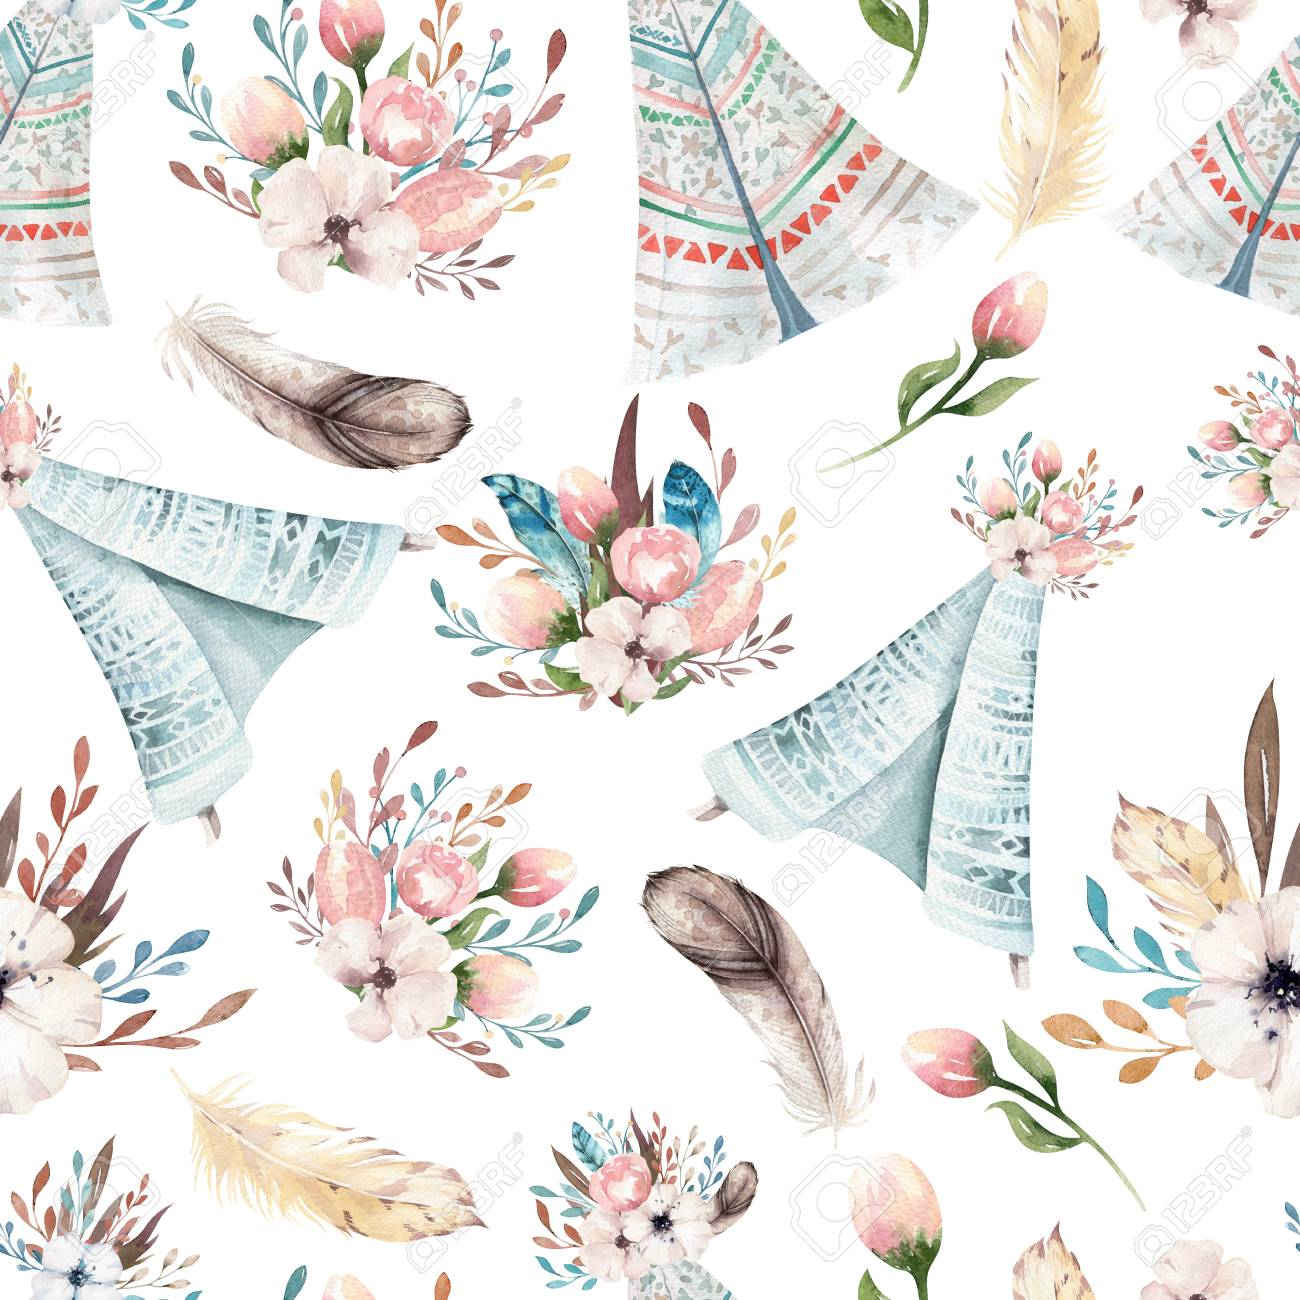 Seamless Boho Watercolor Wallpaper With Blossom Flowers And Leaves 1300x1300